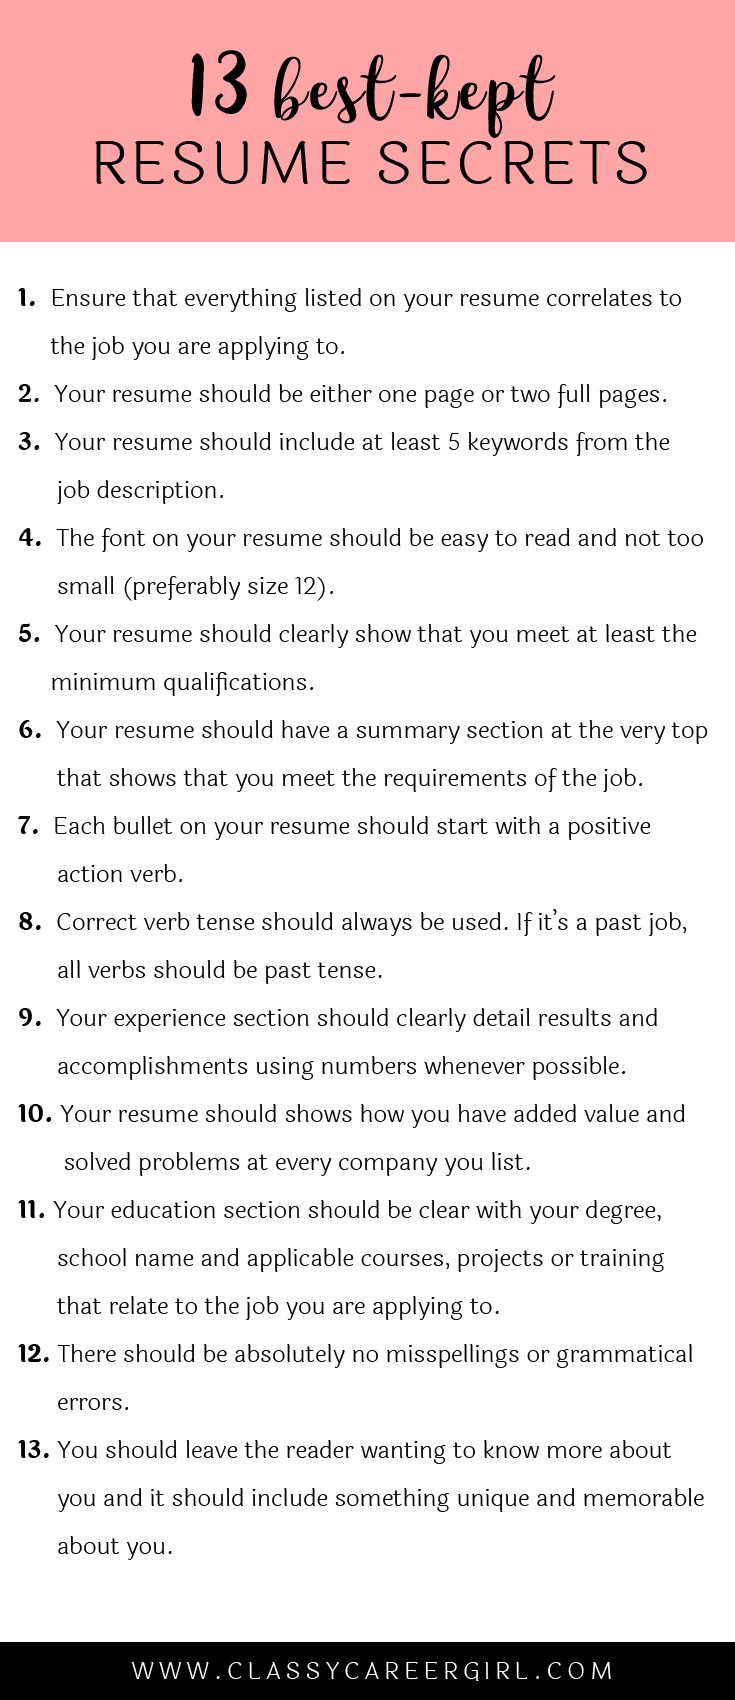 Opposenewapstandardsus  Pleasing  Ideas About Resume On Pinterest  Cv Format Resume Cv And  With Engaging Some Hiring Managers Will Toss Your Resume Out If You Dont Know These  With Endearing Resume To Hire Also Sharepoint Administrator Resume In Addition Customer Service Resume Templates And Resume For Phlebotomist As Well As Hr Resume Template Additionally Resume Posting Websites From Pinterestcom With Opposenewapstandardsus  Engaging  Ideas About Resume On Pinterest  Cv Format Resume Cv And  With Endearing Some Hiring Managers Will Toss Your Resume Out If You Dont Know These  And Pleasing Resume To Hire Also Sharepoint Administrator Resume In Addition Customer Service Resume Templates From Pinterestcom